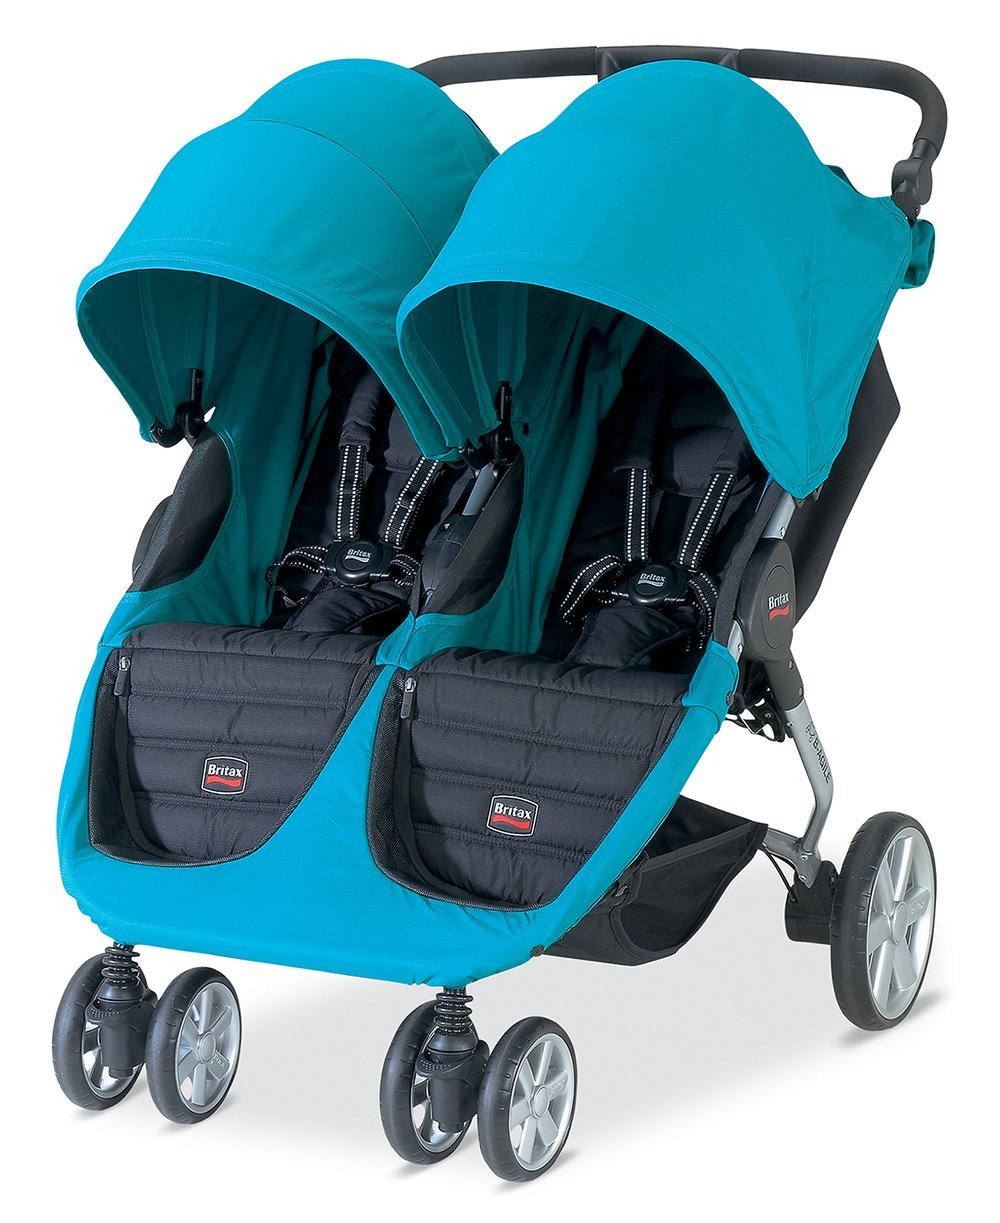 Britax Car Seat With Stroller Daily Baby Finds Reviews Best Strollers 2016 Best Car